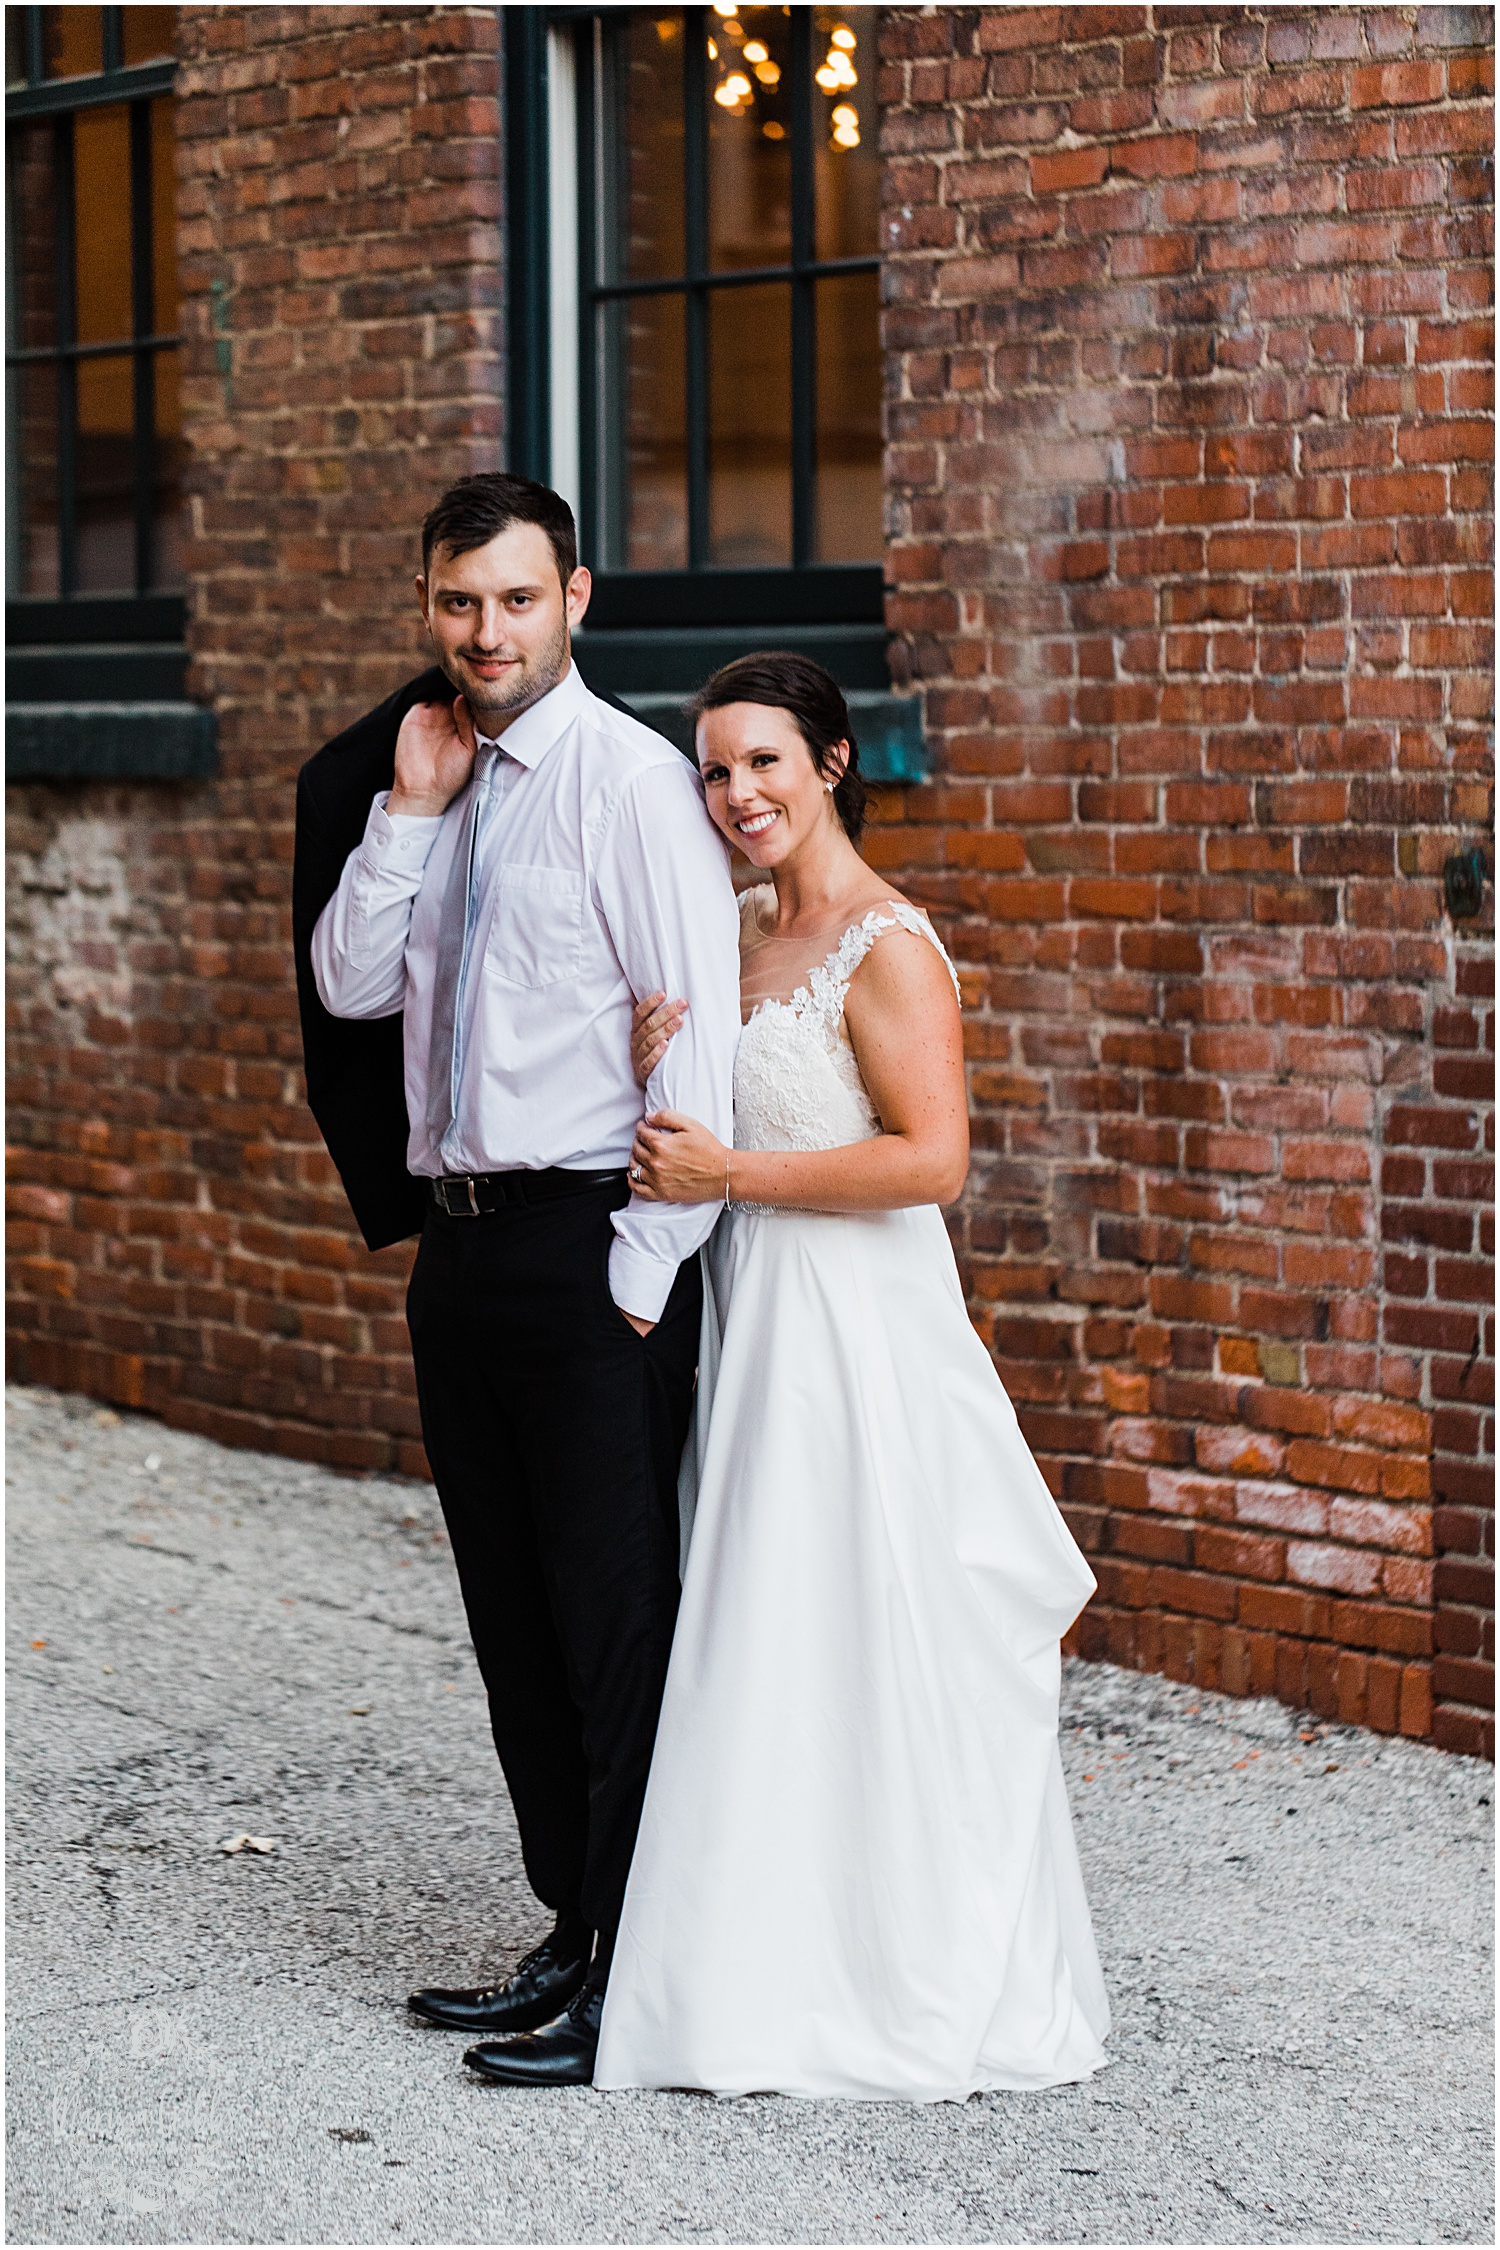 KELLY & MITCH MARRIED BLOG | MARISSA CRIBBS PHOTOGRAPHY | THE EVERLY EVENT SPACE_8922.jpg